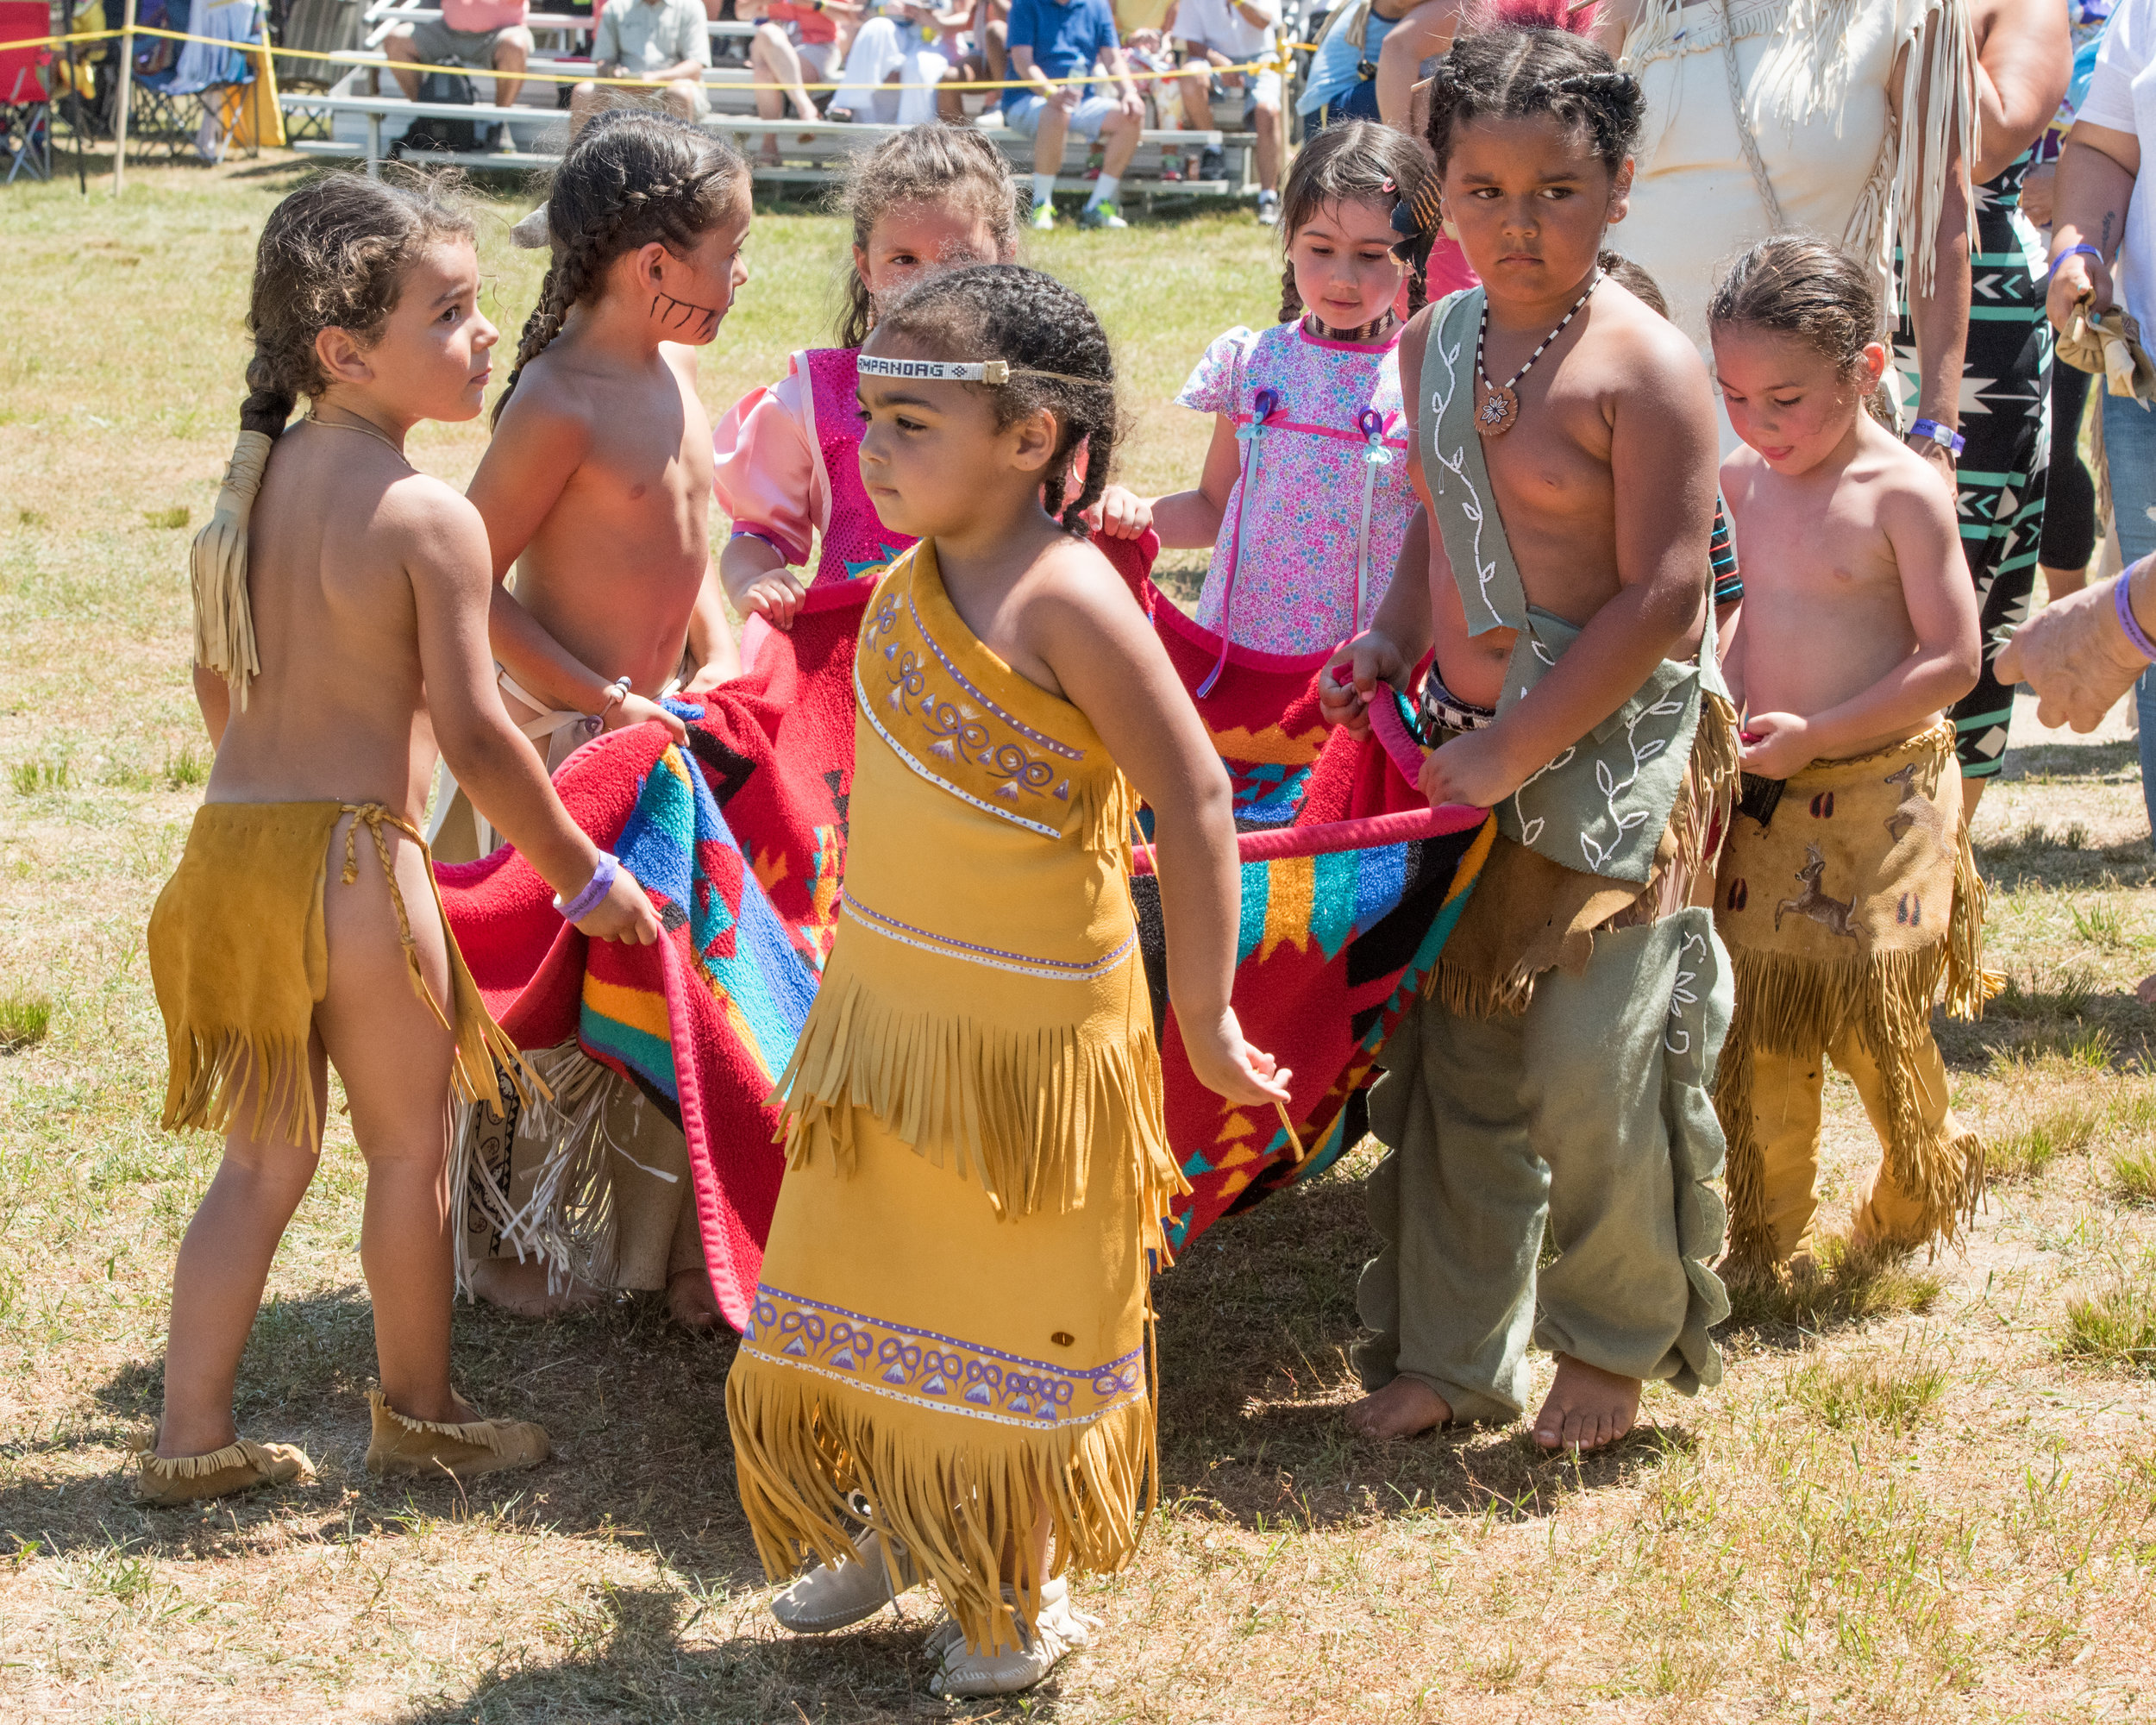 Youth at the Tribe's Annual Powwow collecting donations for the  Mukayuhsak Weekuw : The Children's House, a Wampanoag Language Immersion Nest